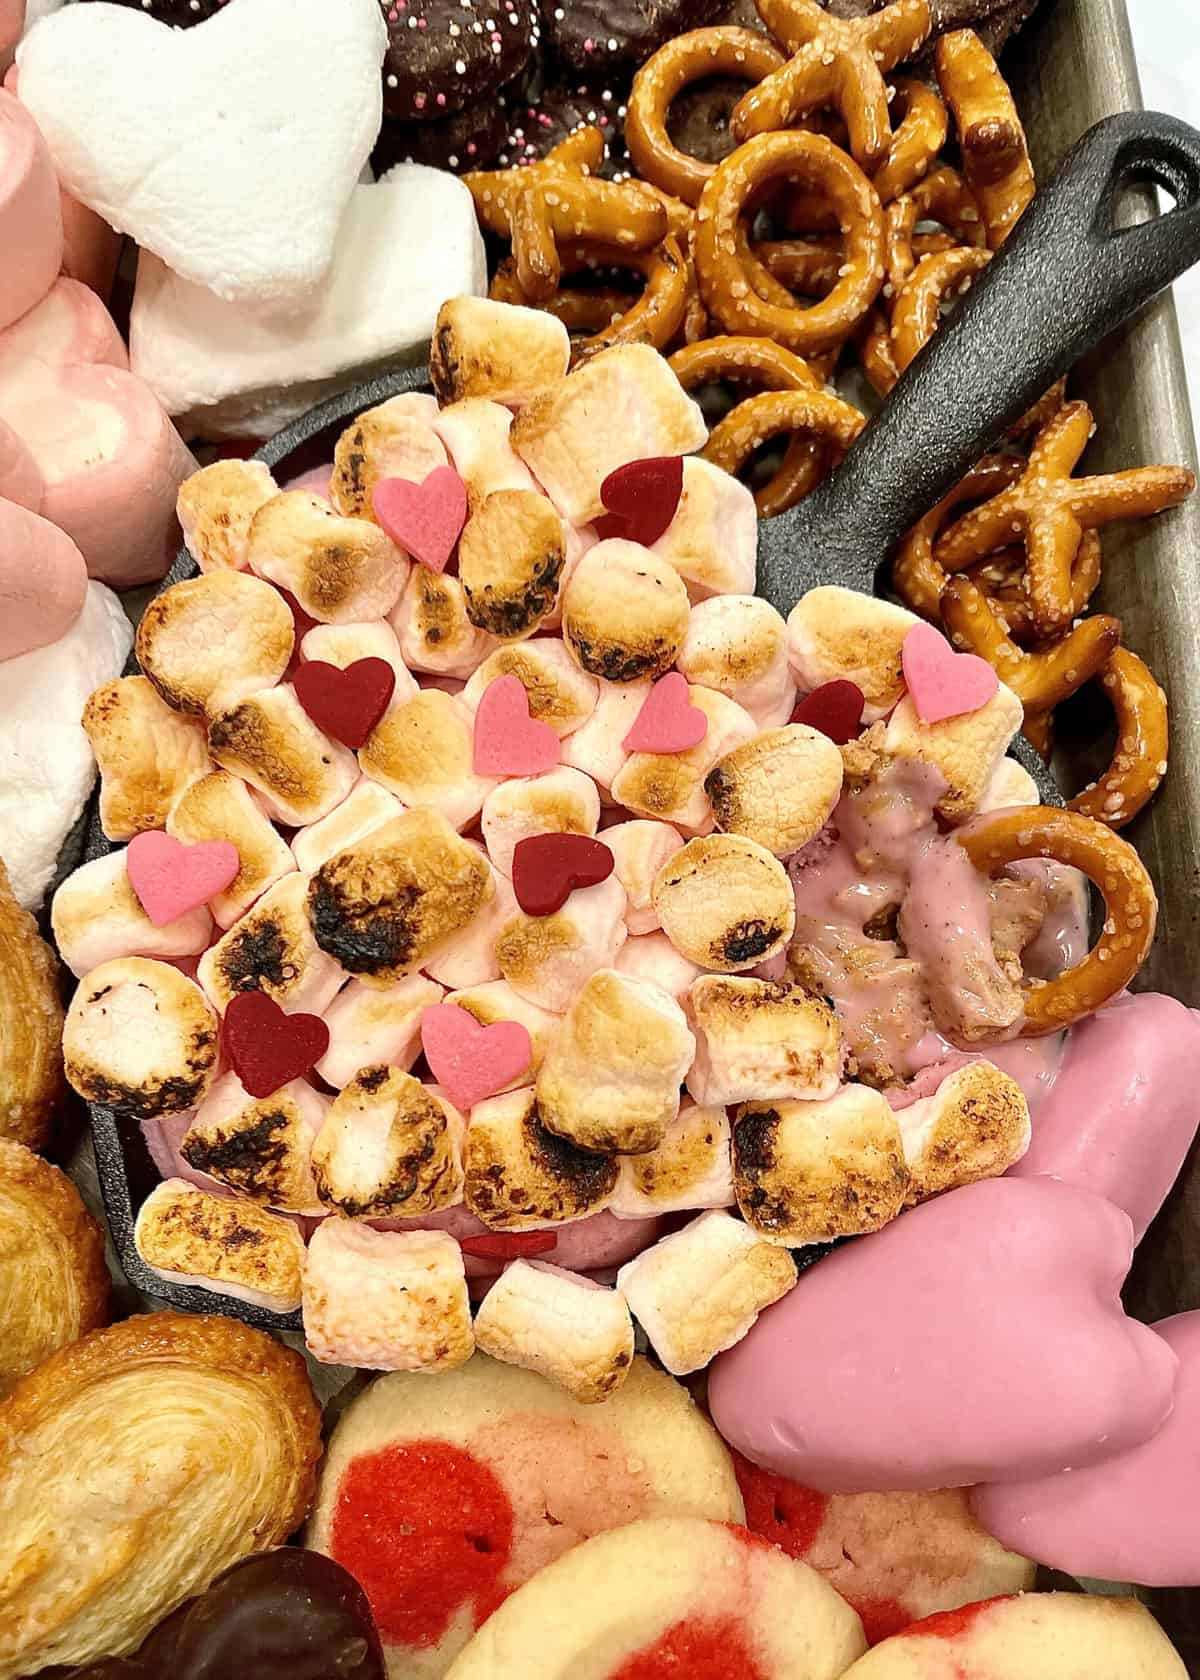 Pink Peanut Butter S'mores Dip by The BakerMama